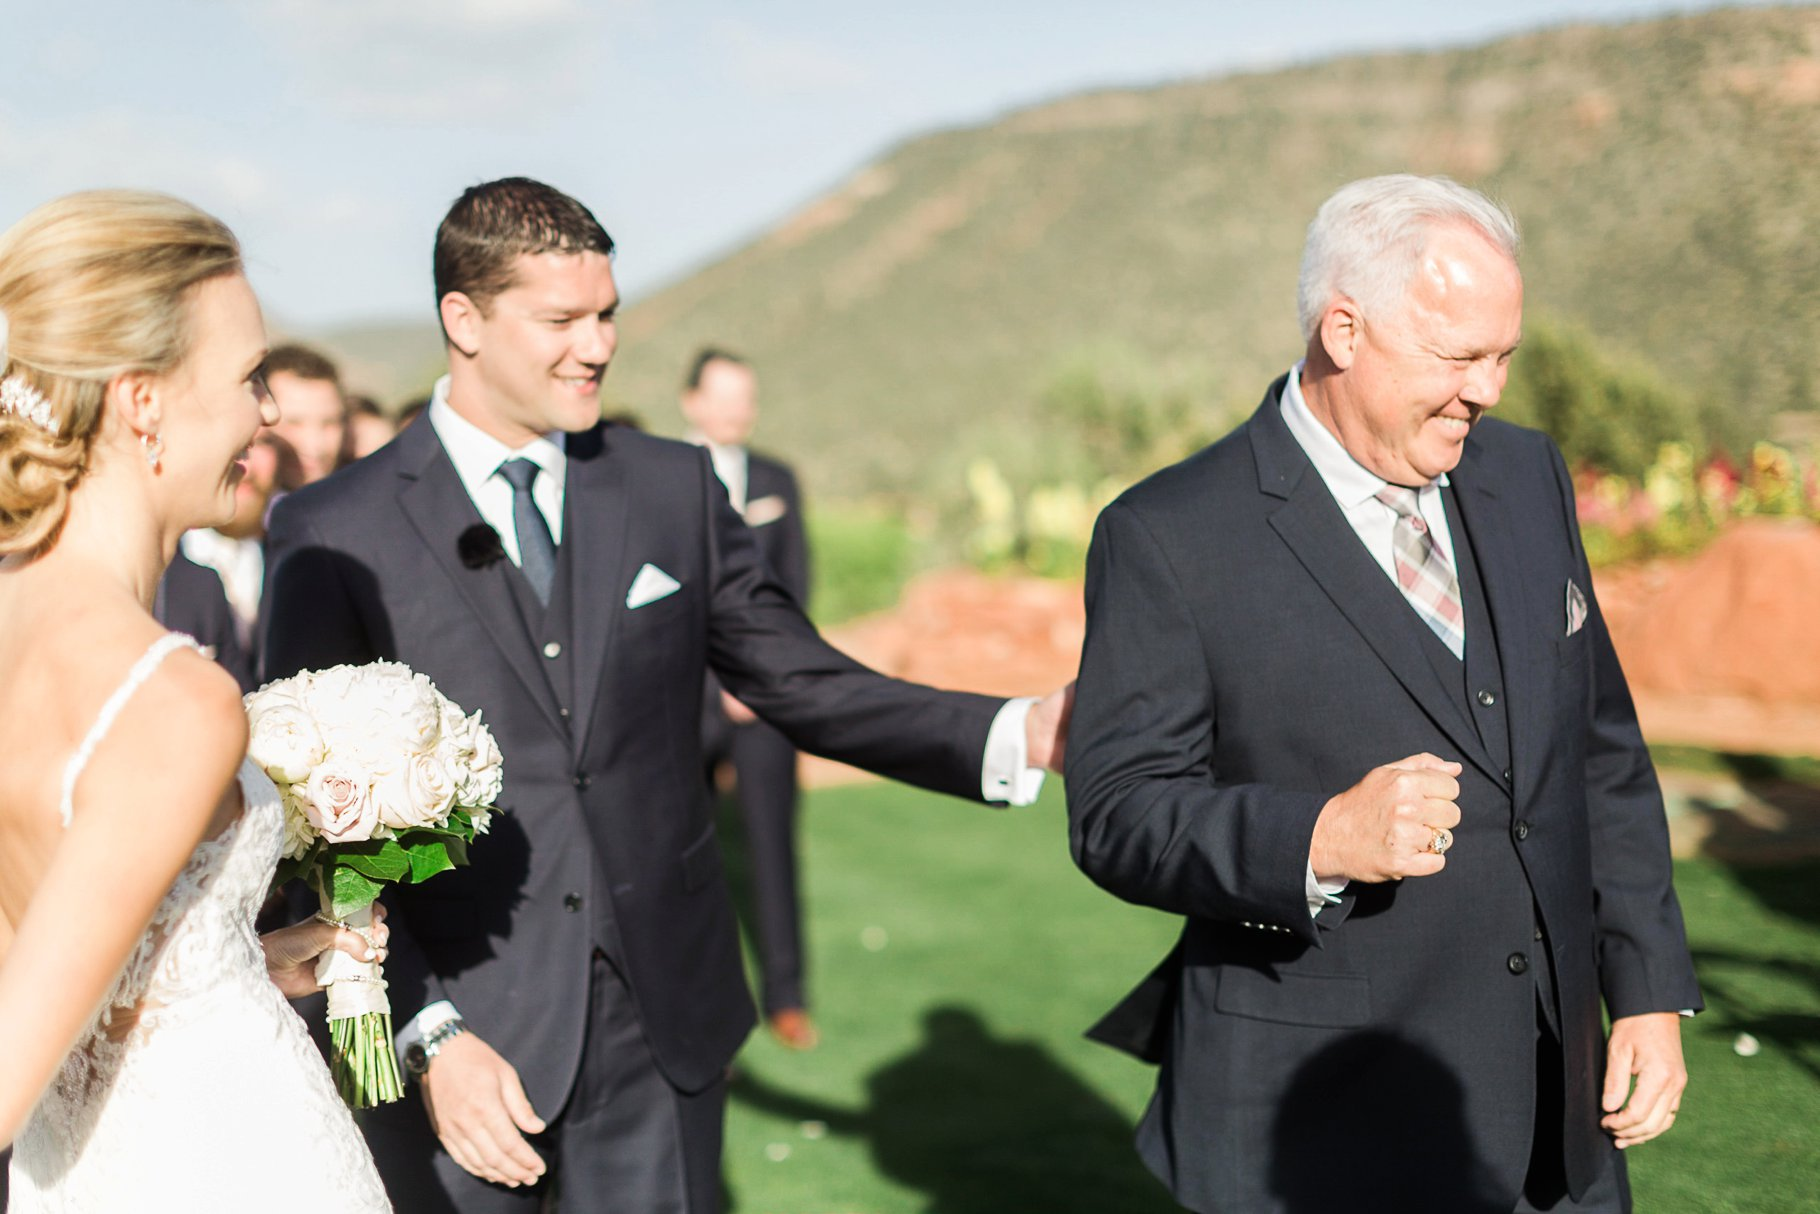 sedona wedding-72_GRETCHEN WAKEMAN PHOTOGRAPHY.jpg